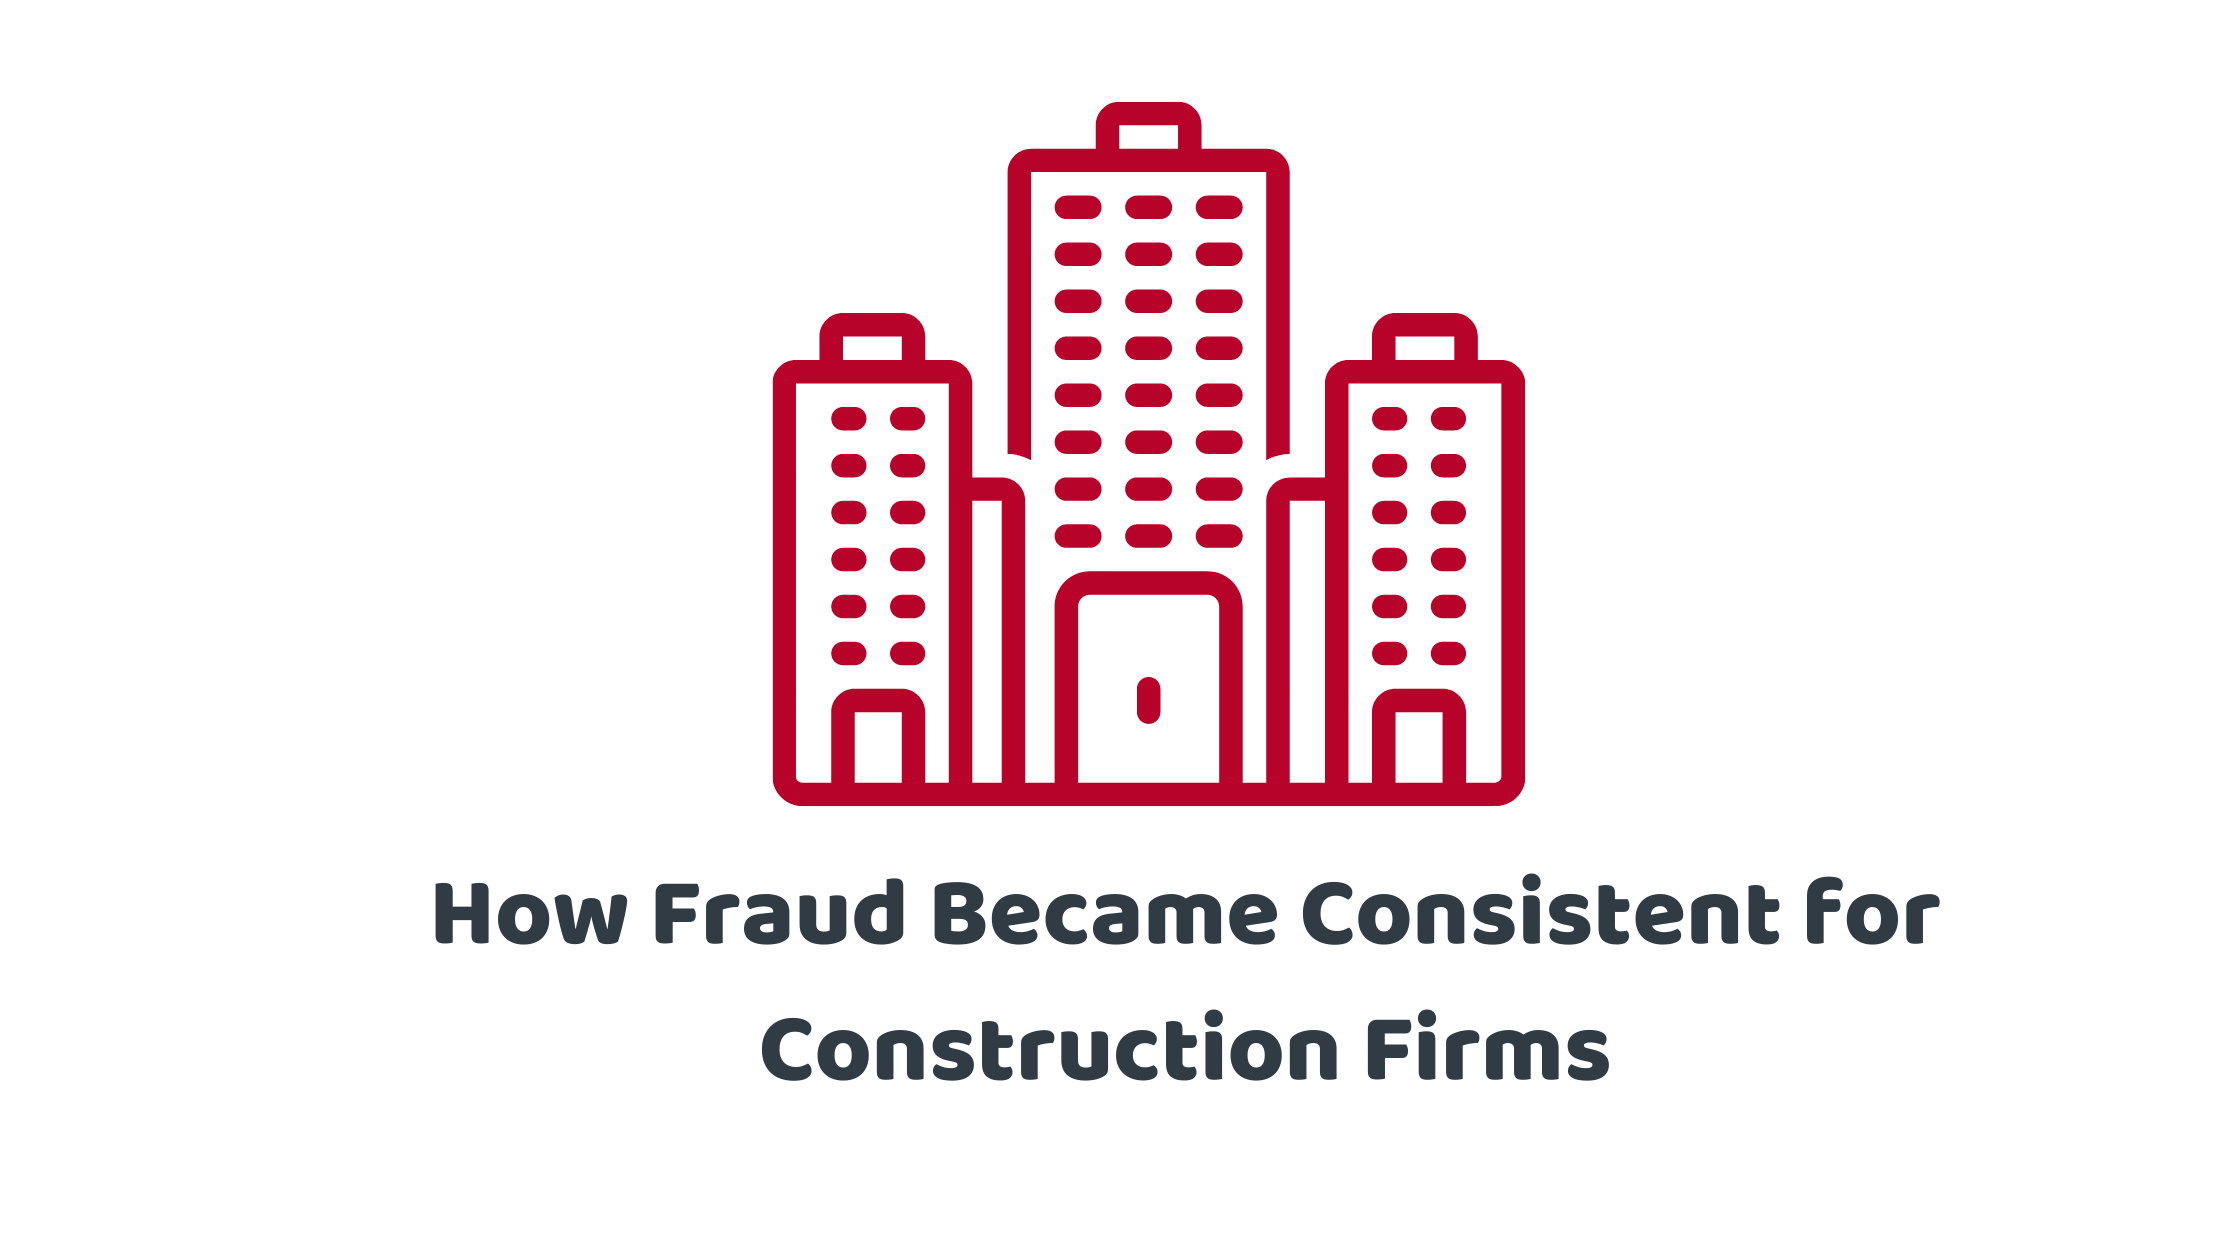 How Fraud Became Consistent for Construction FIrms